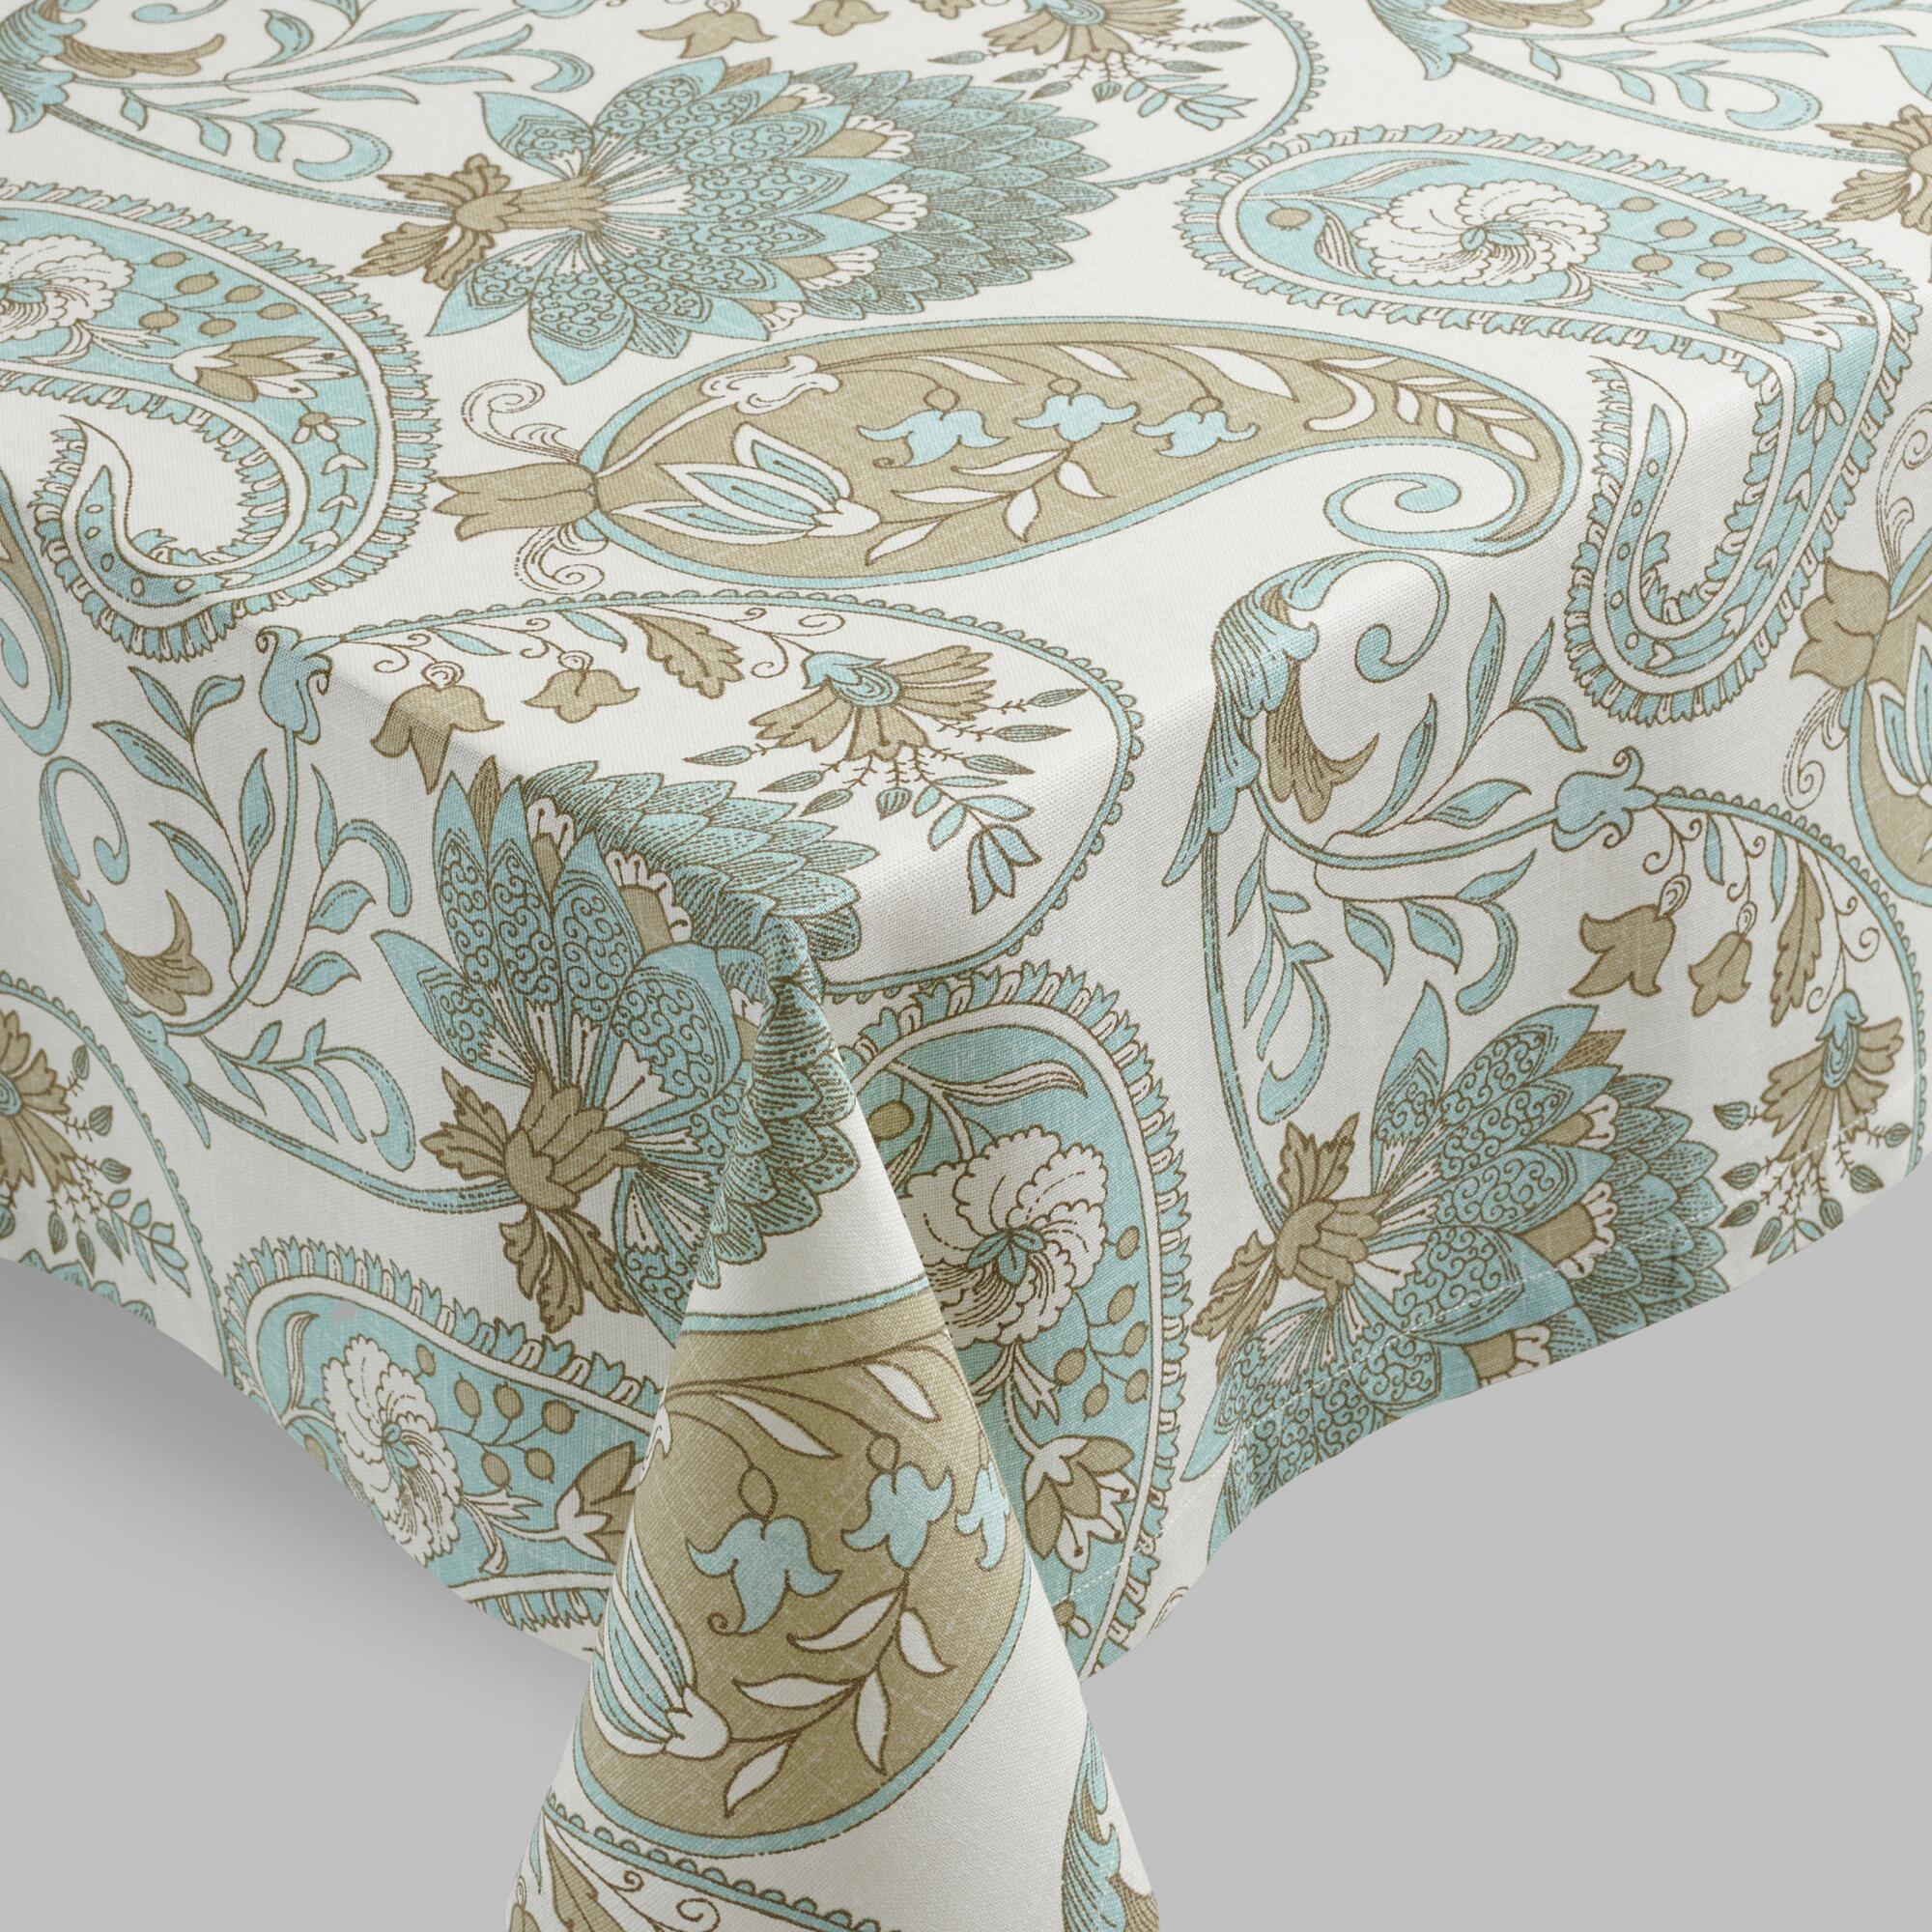 Customizable full color Paisley tablecloths from Zazzle - Pick your favorite Paisley table cloths from thousands of available designs! Blue Paisley Tablecloth. $ 15% Off with code WEDNESDAYWOW. Funky Paisley Fabric Tablecloth. $ 15% Off with code WEDNESDAYWOW. orange paisley tablecloth.